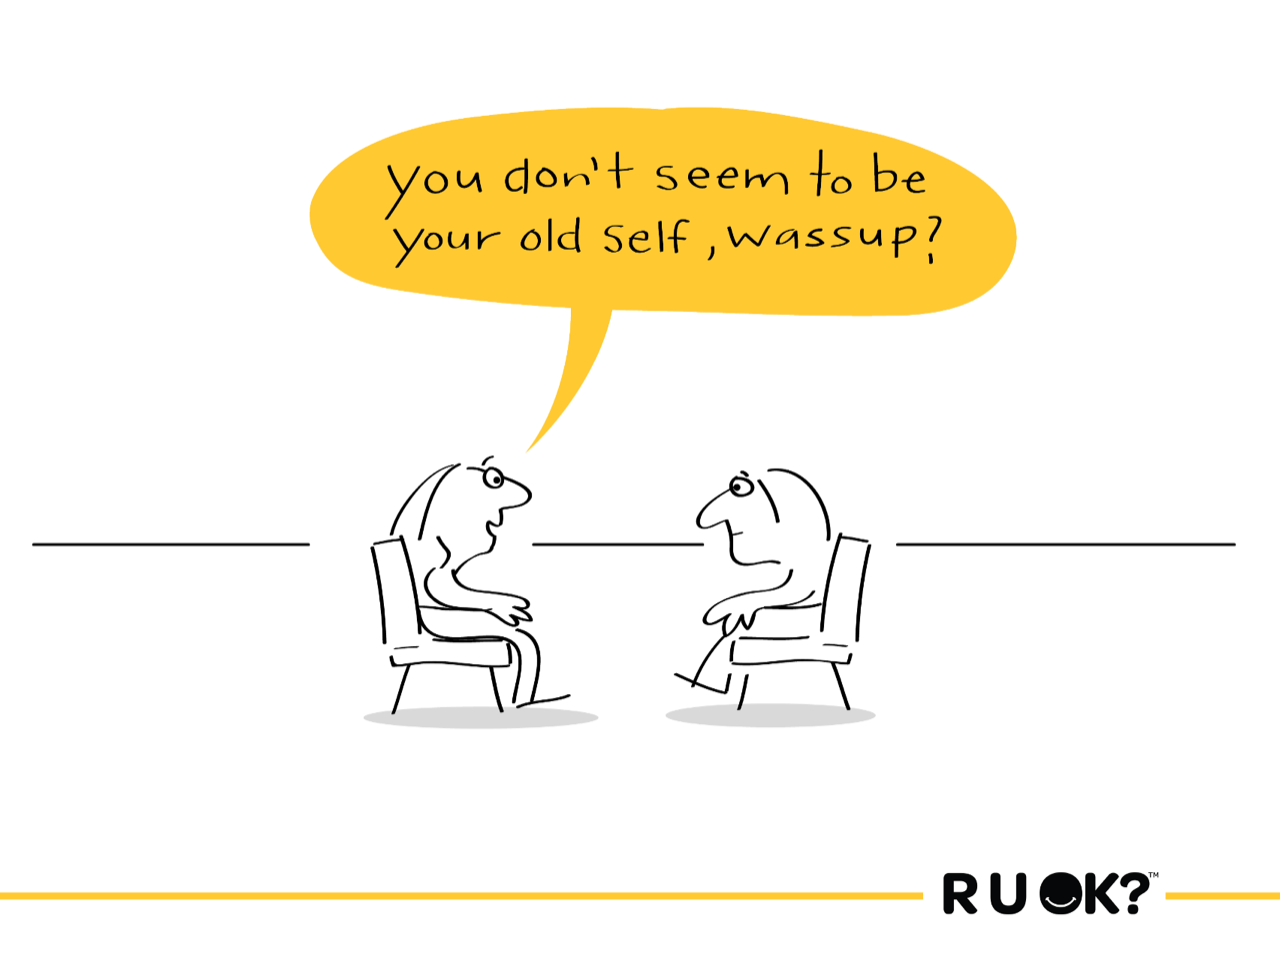 Make RUOK DAY Every Day – Not Just September 9